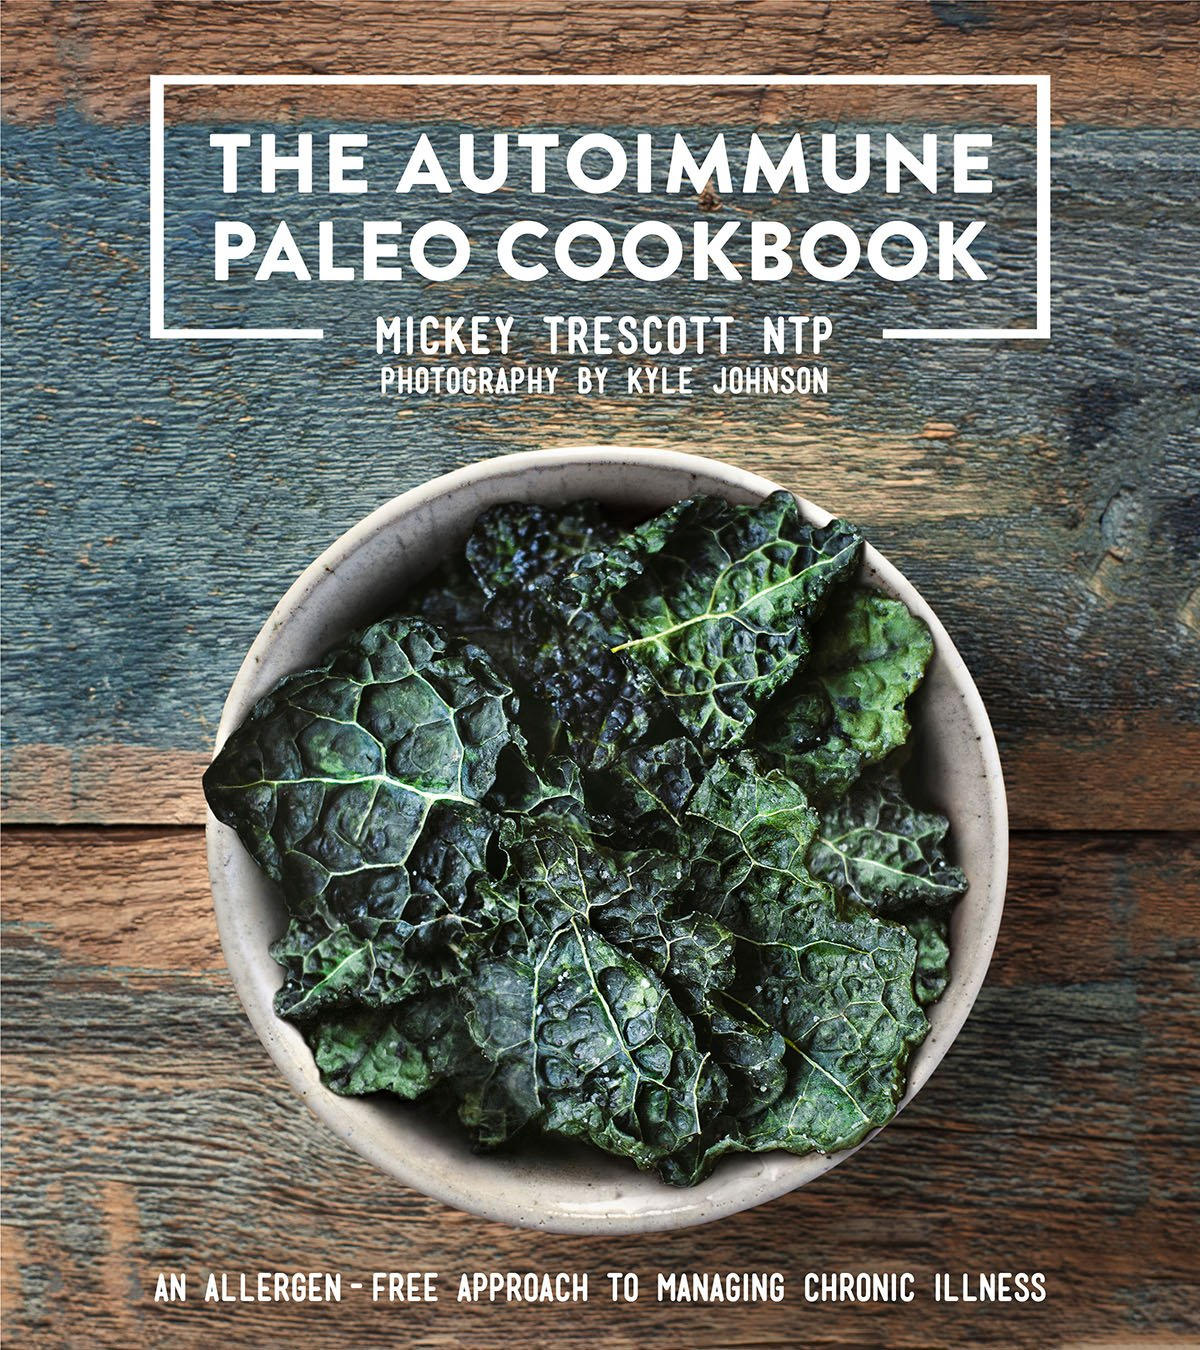 Autoimmune Paleo Cookbook Allergen Free Approach product image